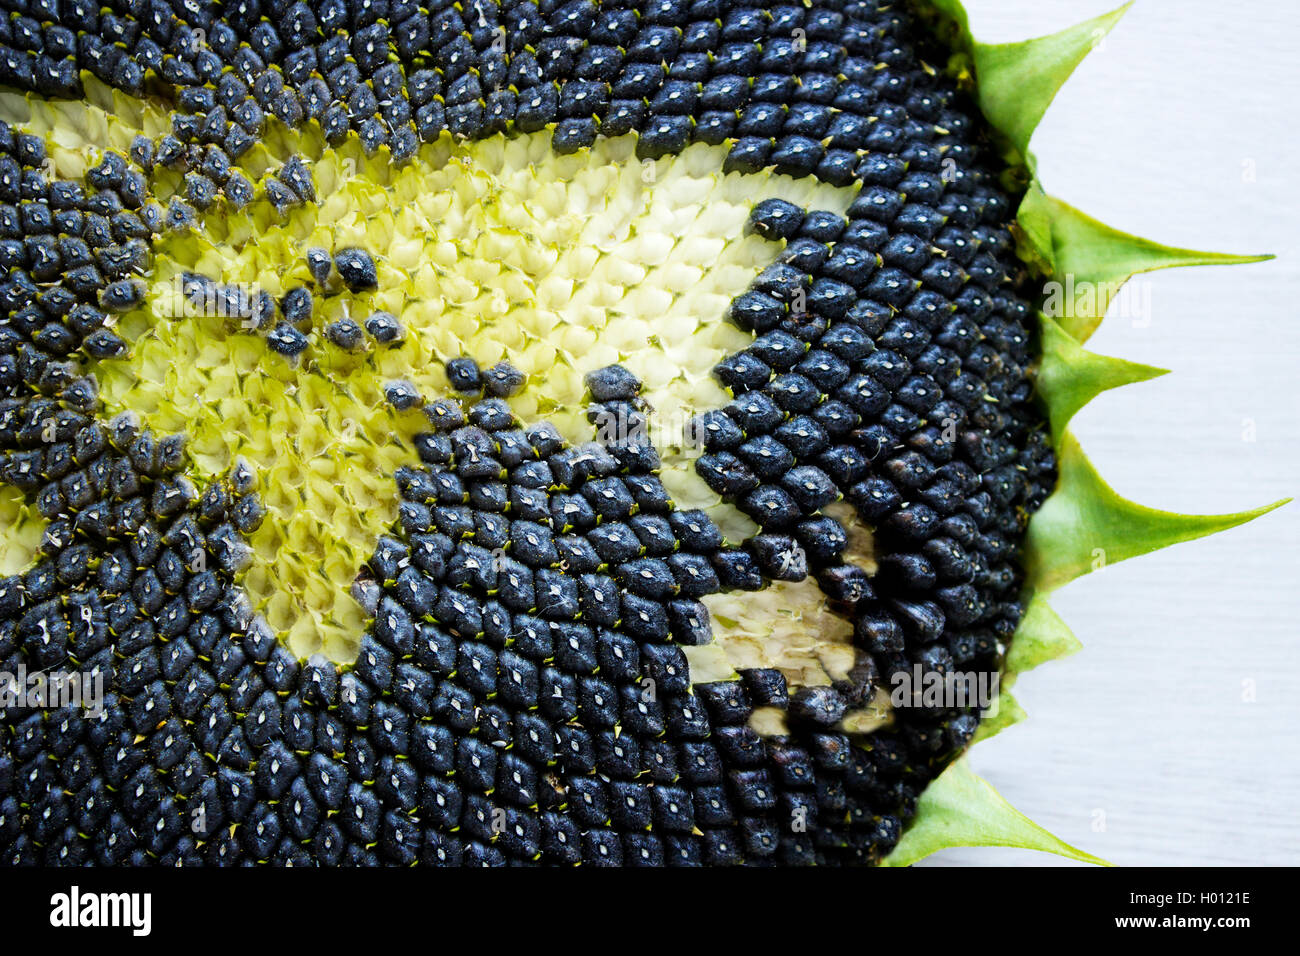 world map made from whole sunflower. Eurasia - Stock Image